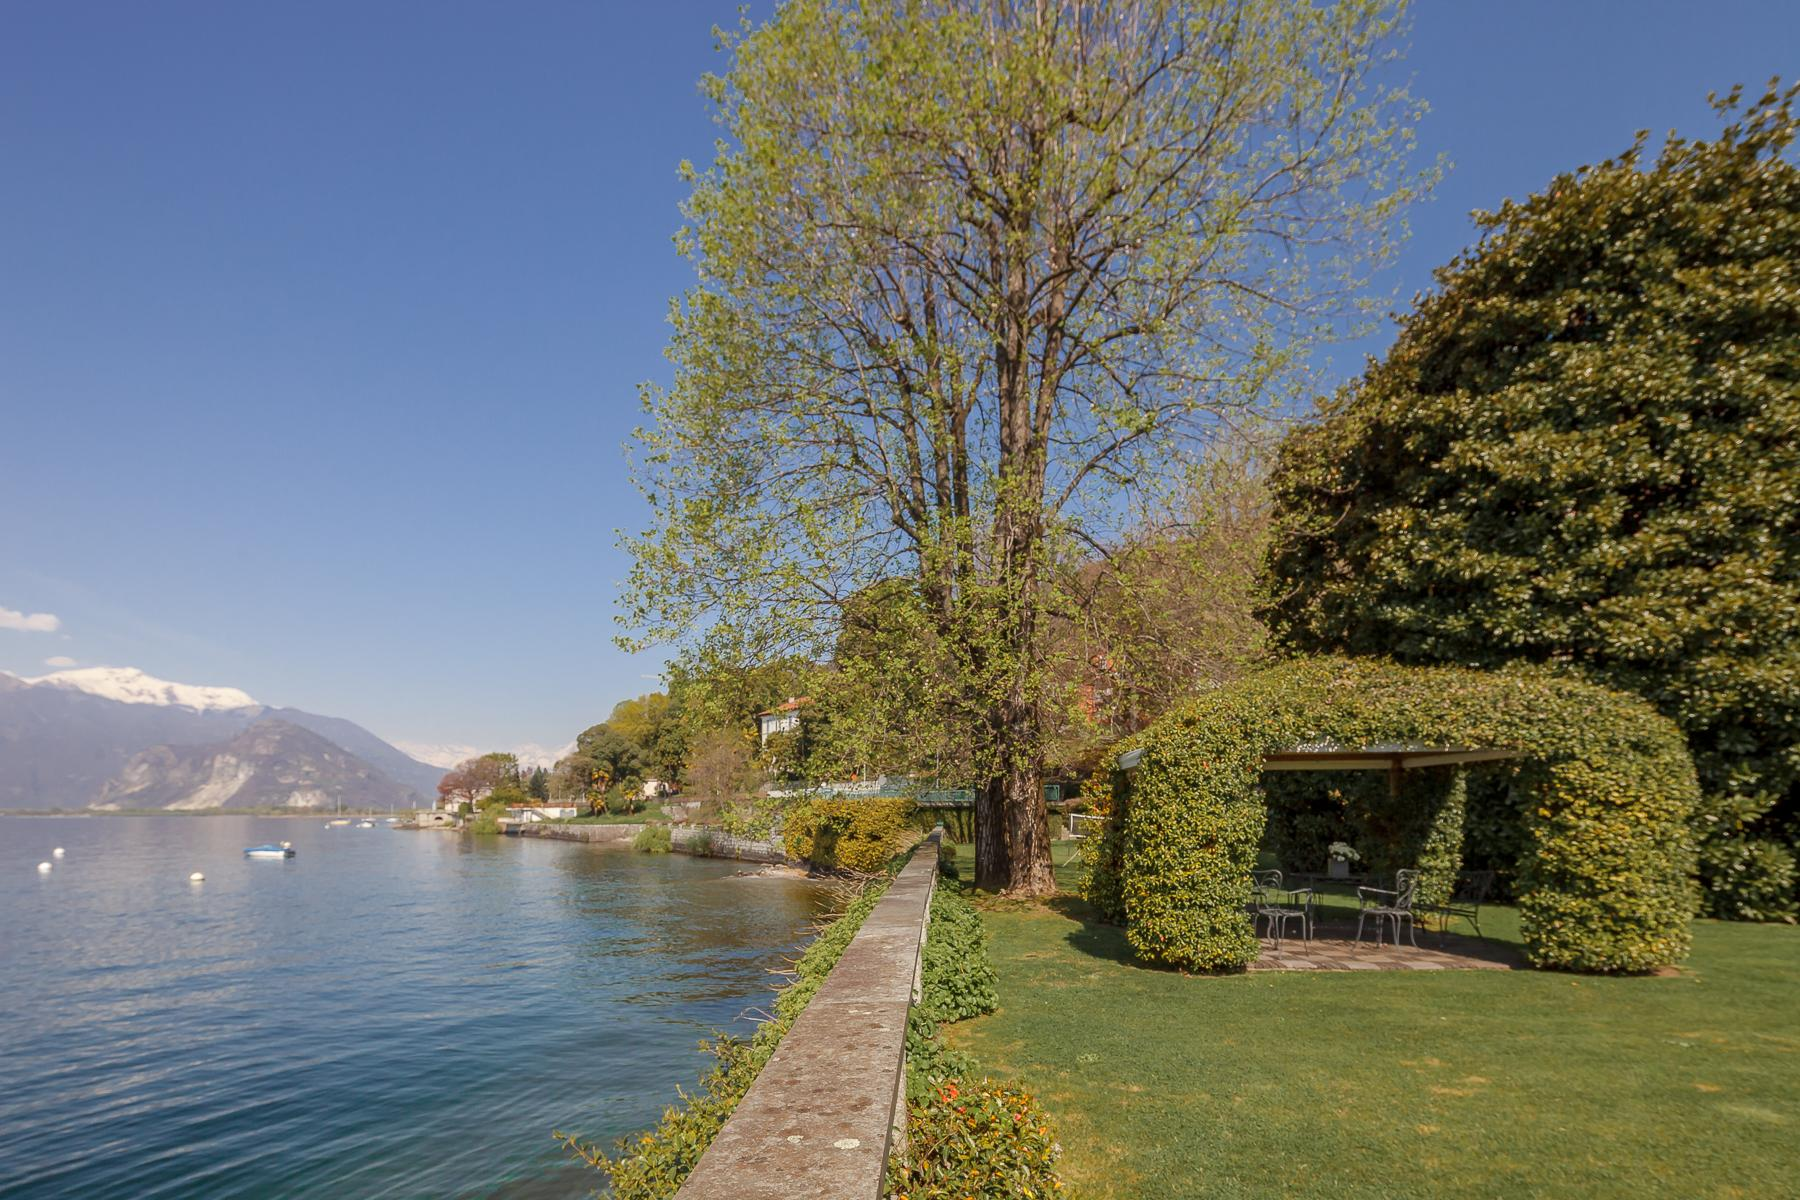 Villa with access to the lake designed and built by the architect Aldo Rossi - 6